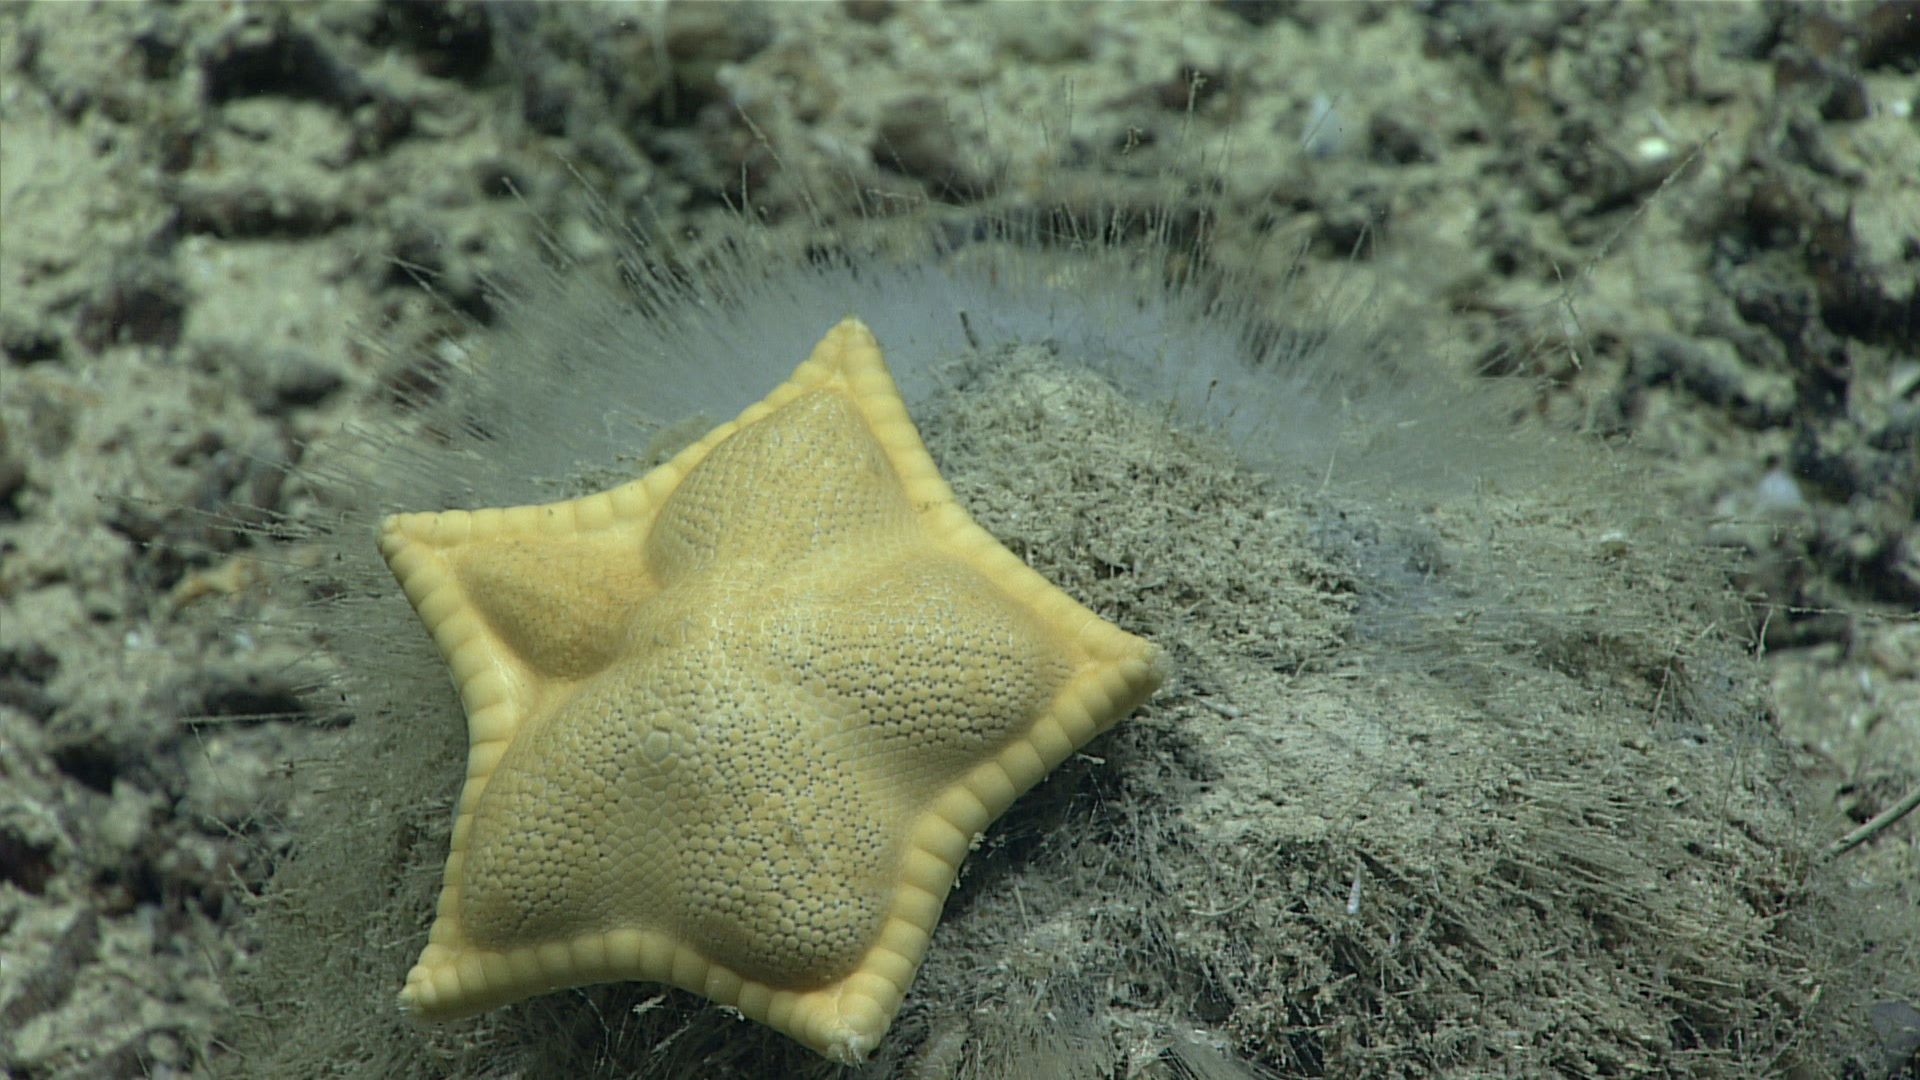 Plinthaster dentatus, the spongivorous 'cookie' or 'ravioli' star.